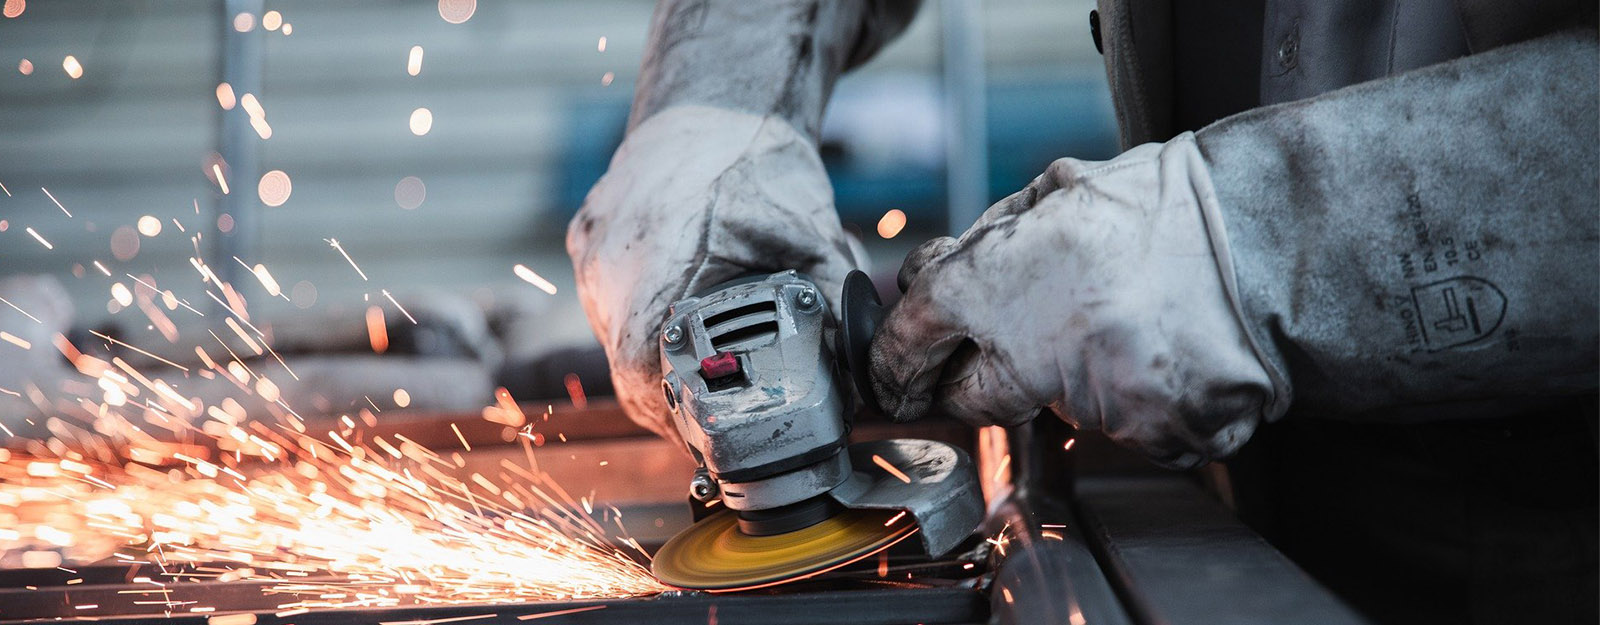 Worker wearing gloves using a hand grinder on metal with sparks flying.